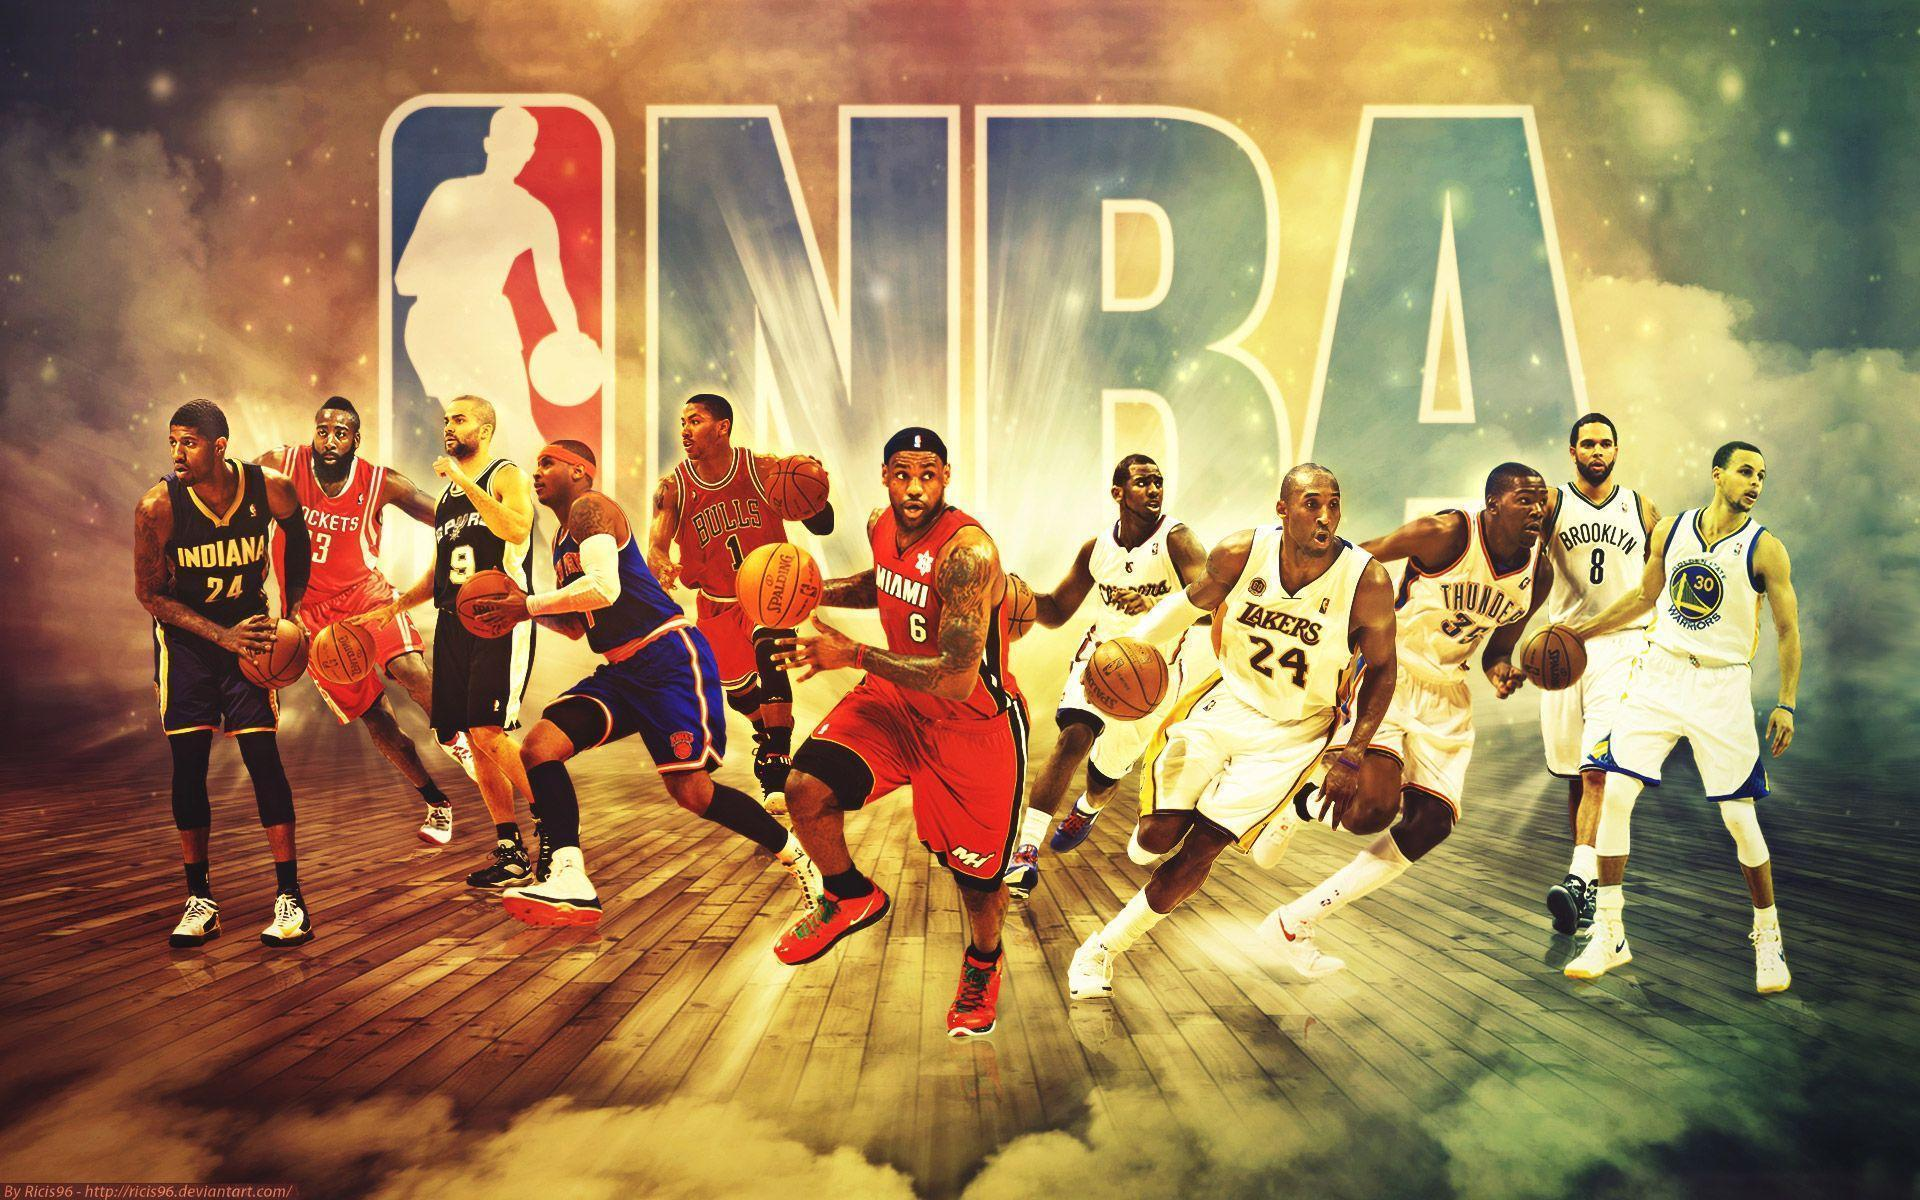 NBA basketball wallpapers of the biggest events and best players